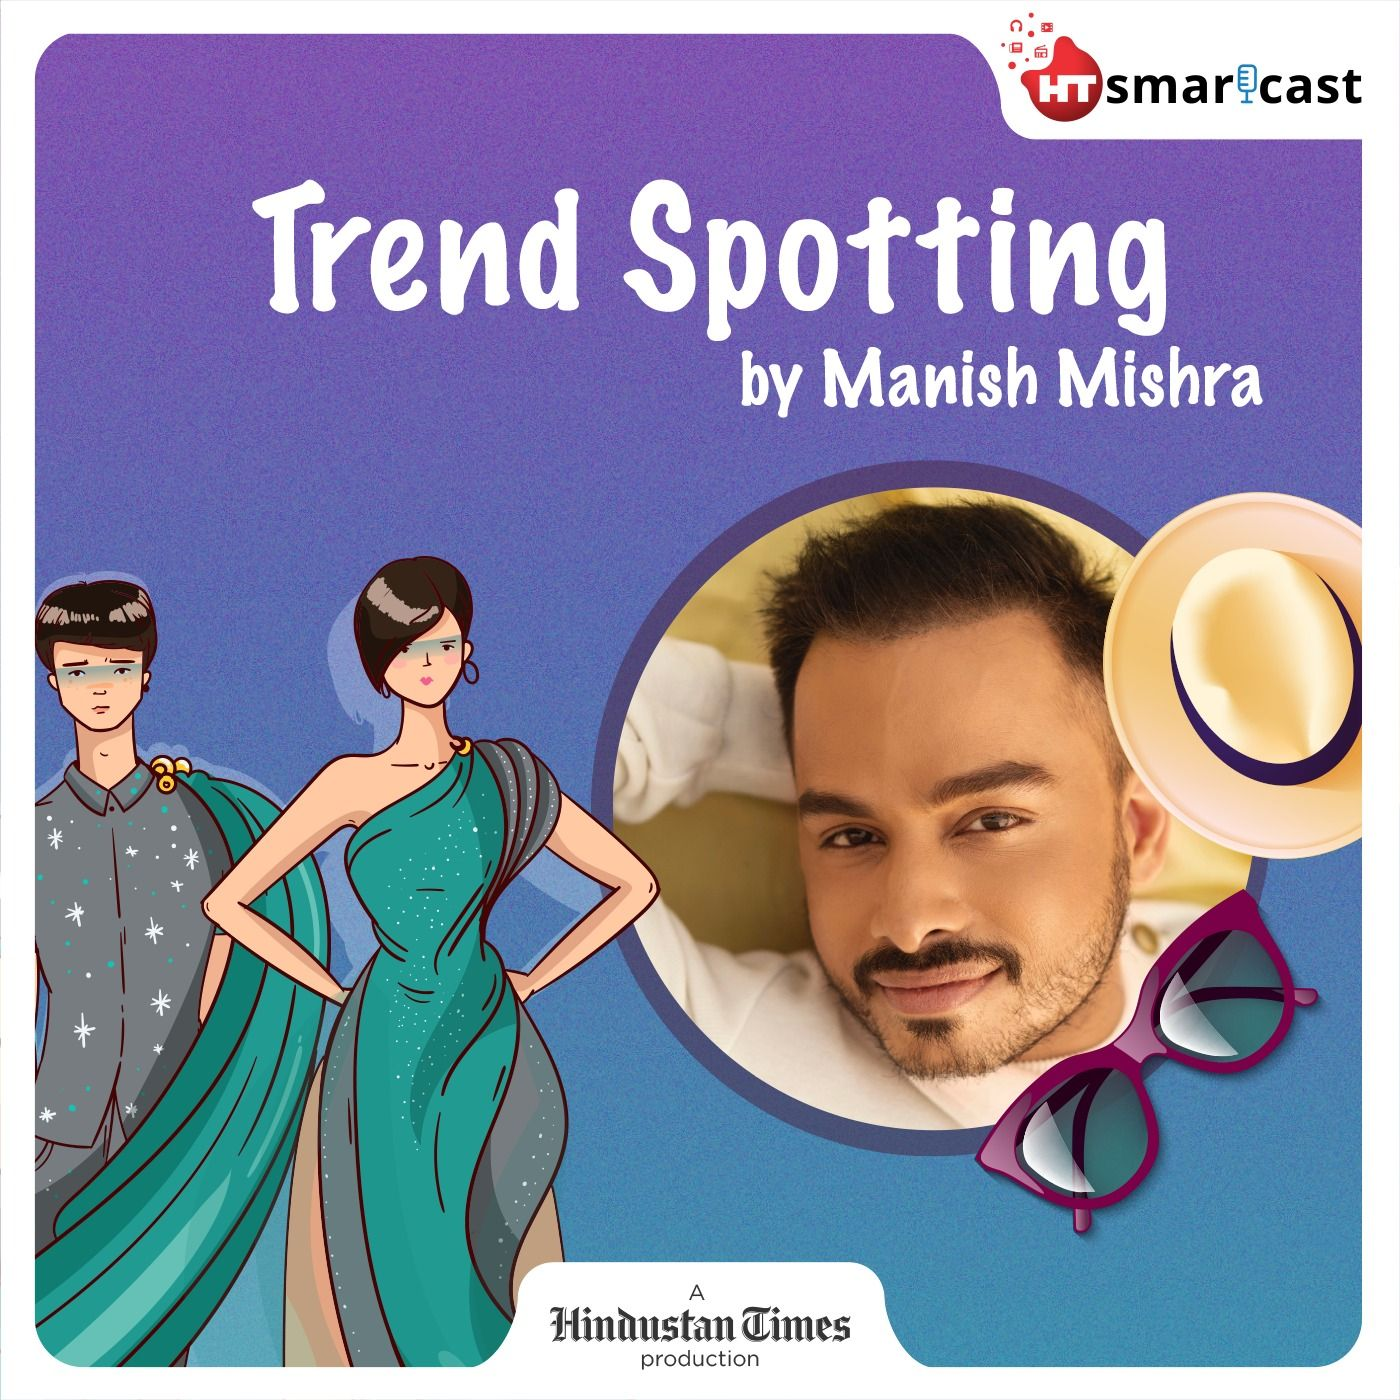 Trend Spotting by Manish Mishra